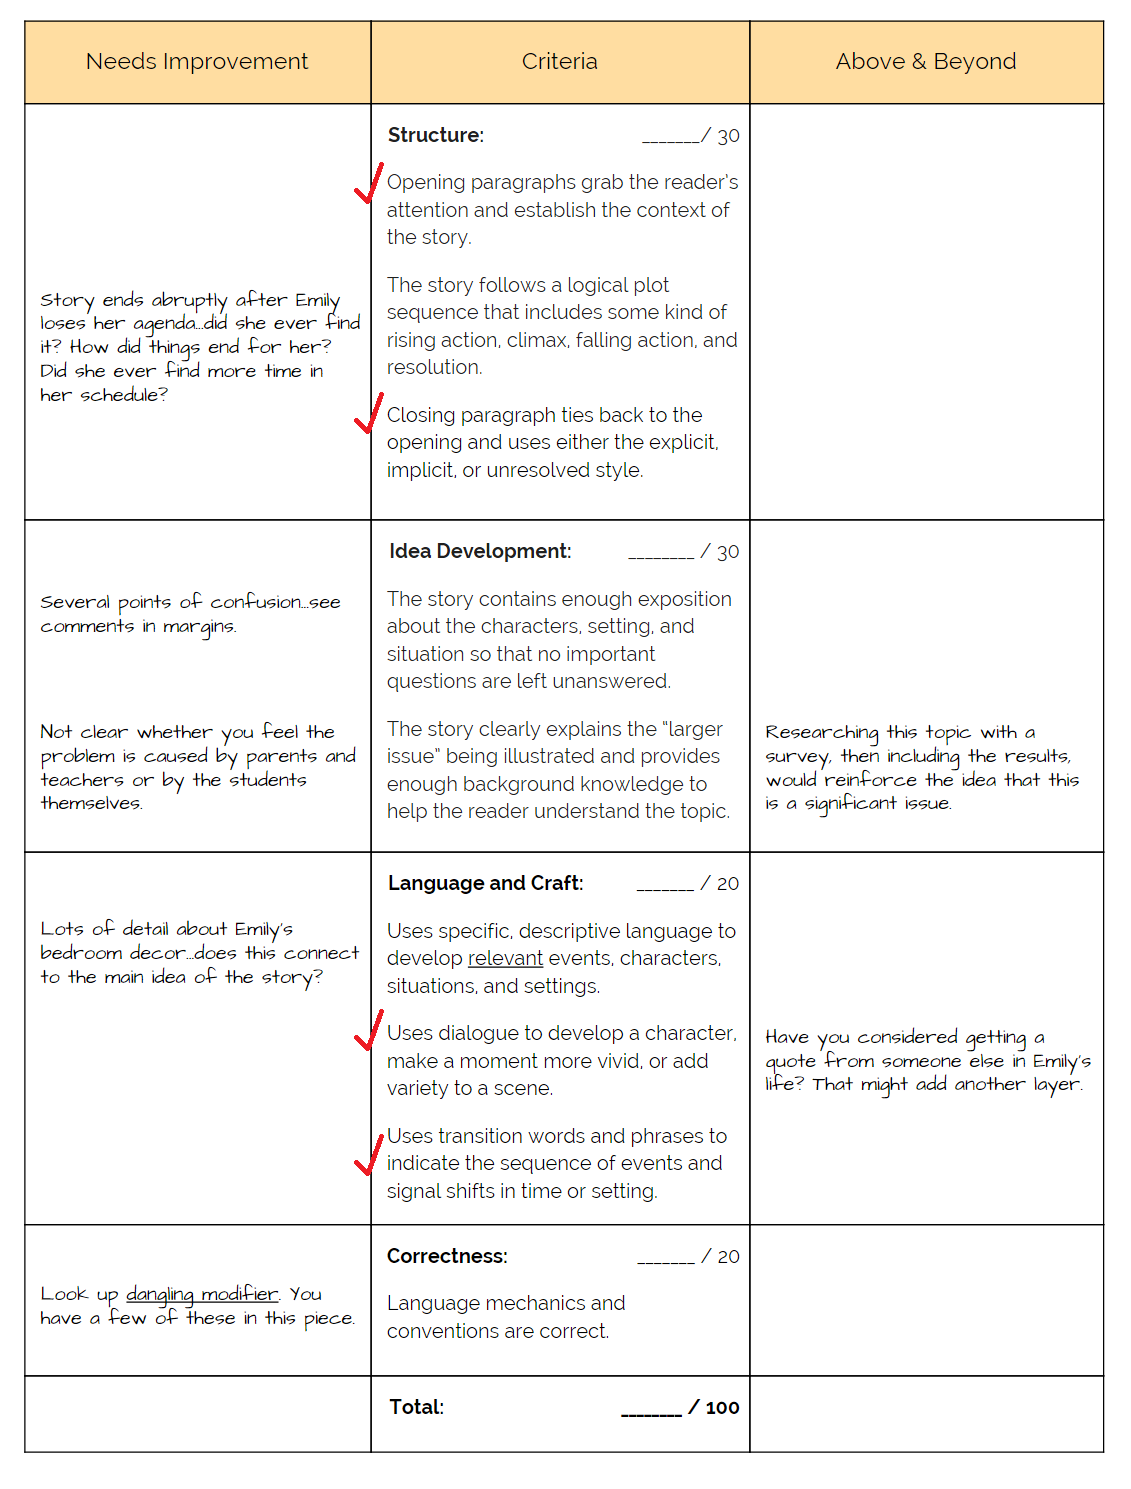 Workbooks teach-nology.com worksheets : How to Turn Rubric Scores into Grades | Rubrics, Scores and Teacher